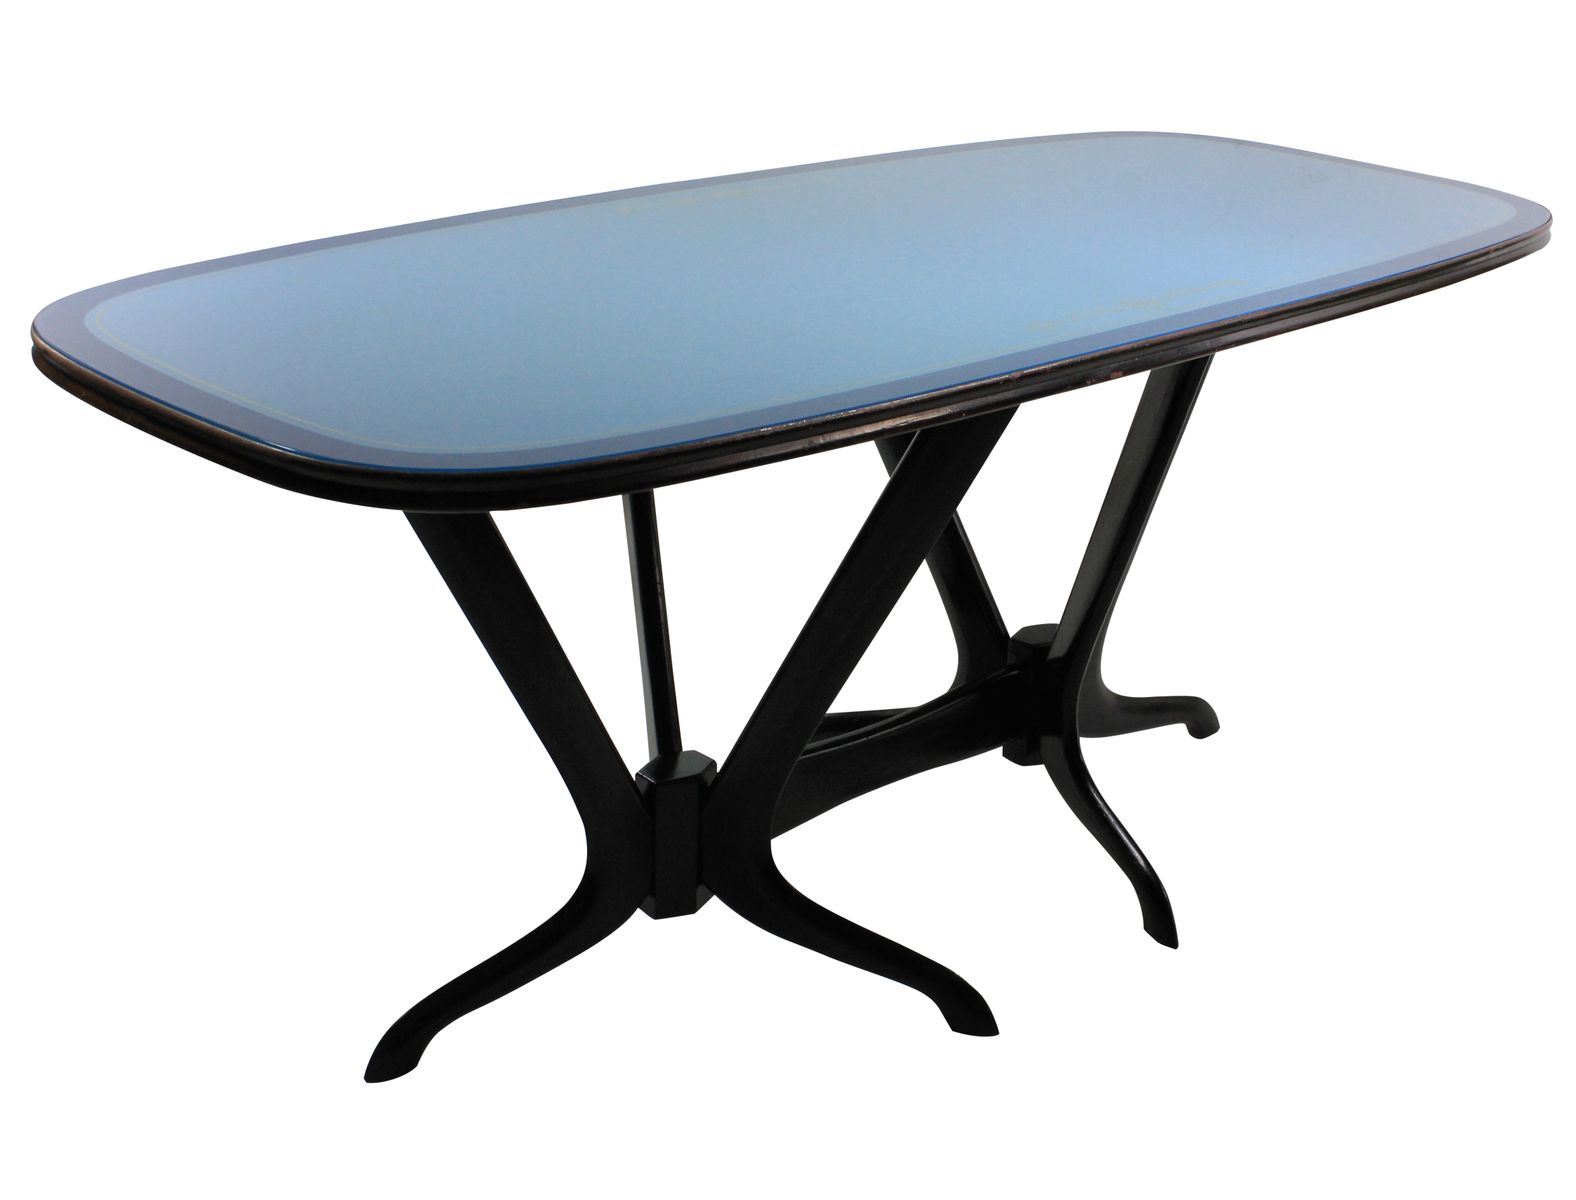 Italian Sculptural Dining Table 1950s For Sale At Pamono